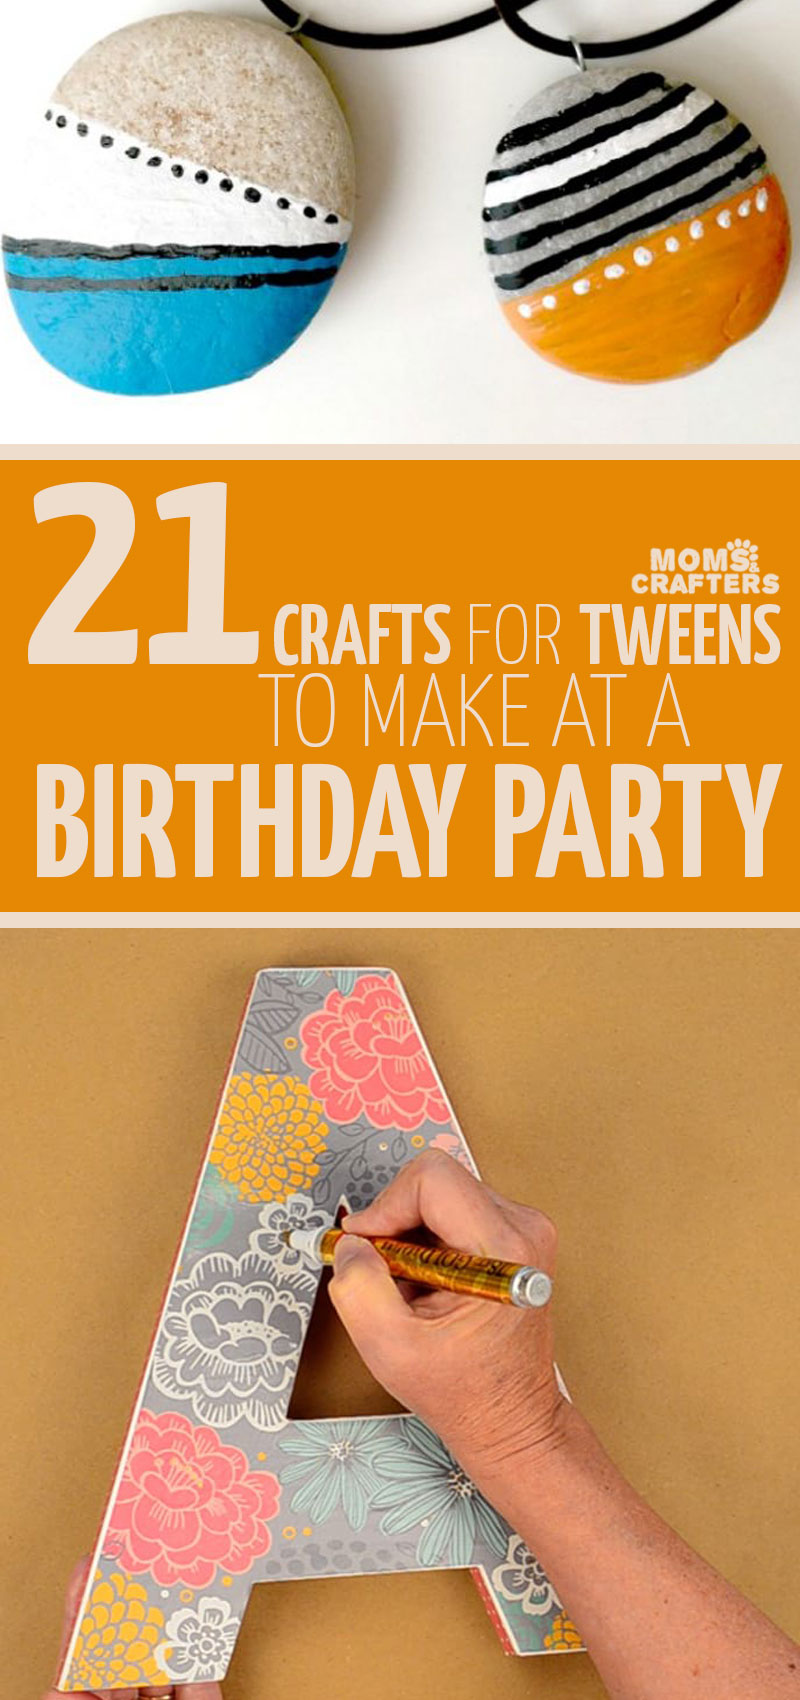 Click for a fun list of birthday party crafts for tweens and teens - these fun ideas are perfect for tween craft workshops for boys or girls.